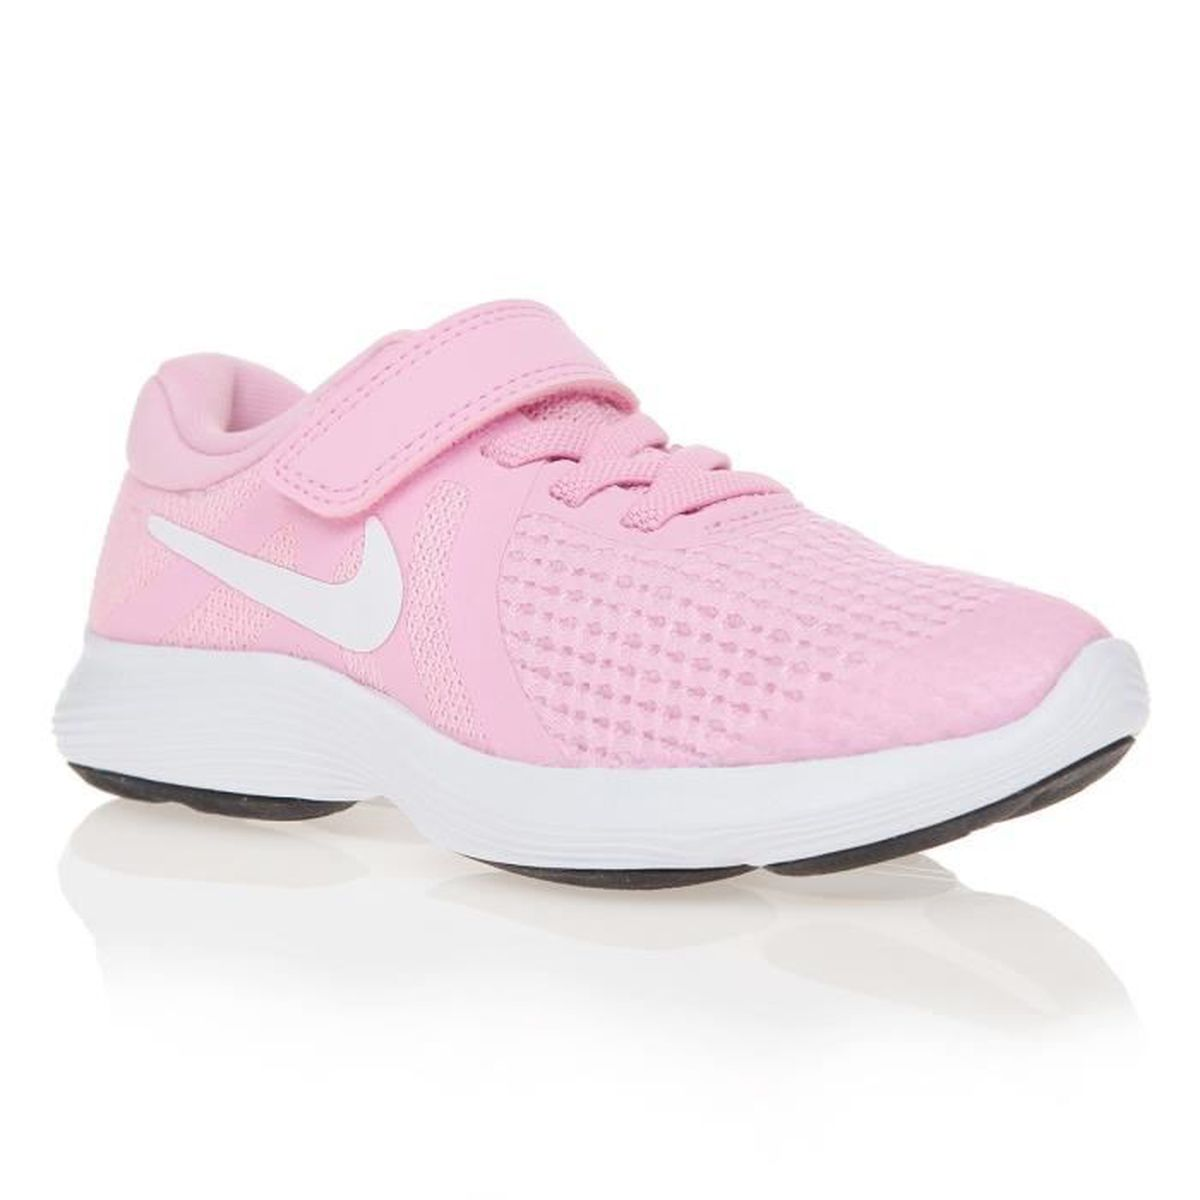 b4842f8545d32 Chaussure nike fille - Achat   Vente pas cher